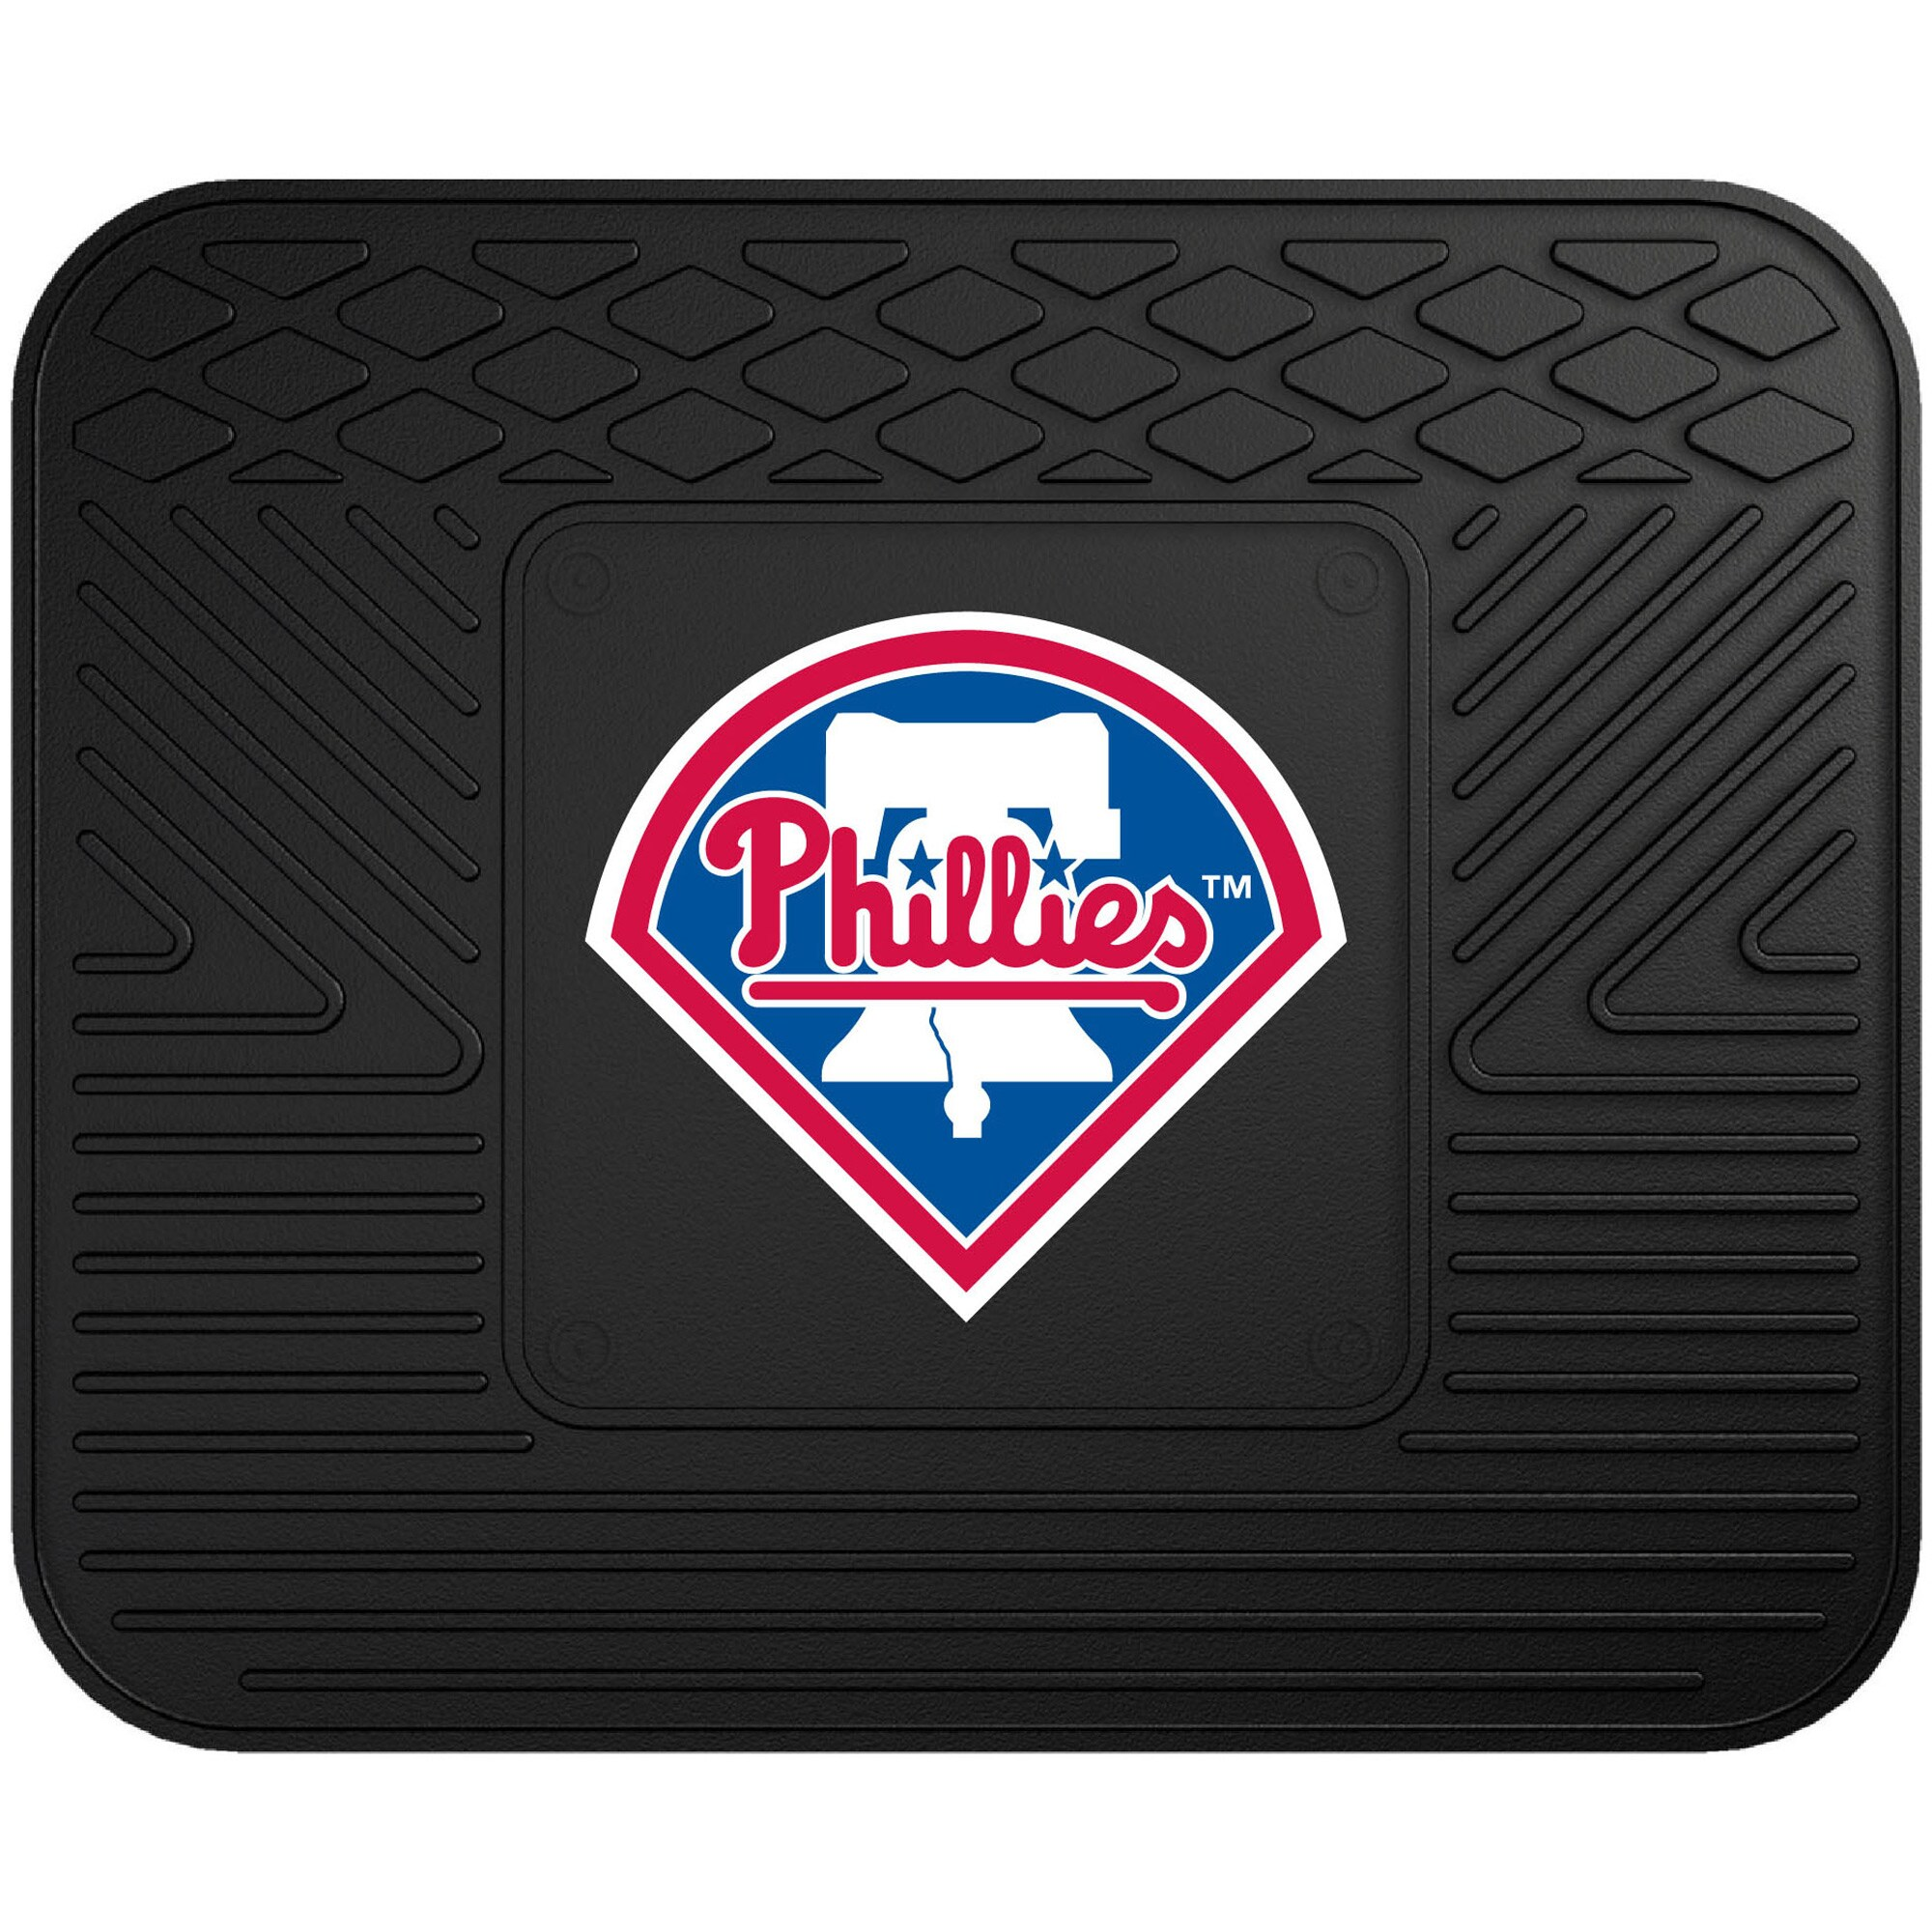 "Philadelphia Phillies 17"" x 14"" Utility Mat"